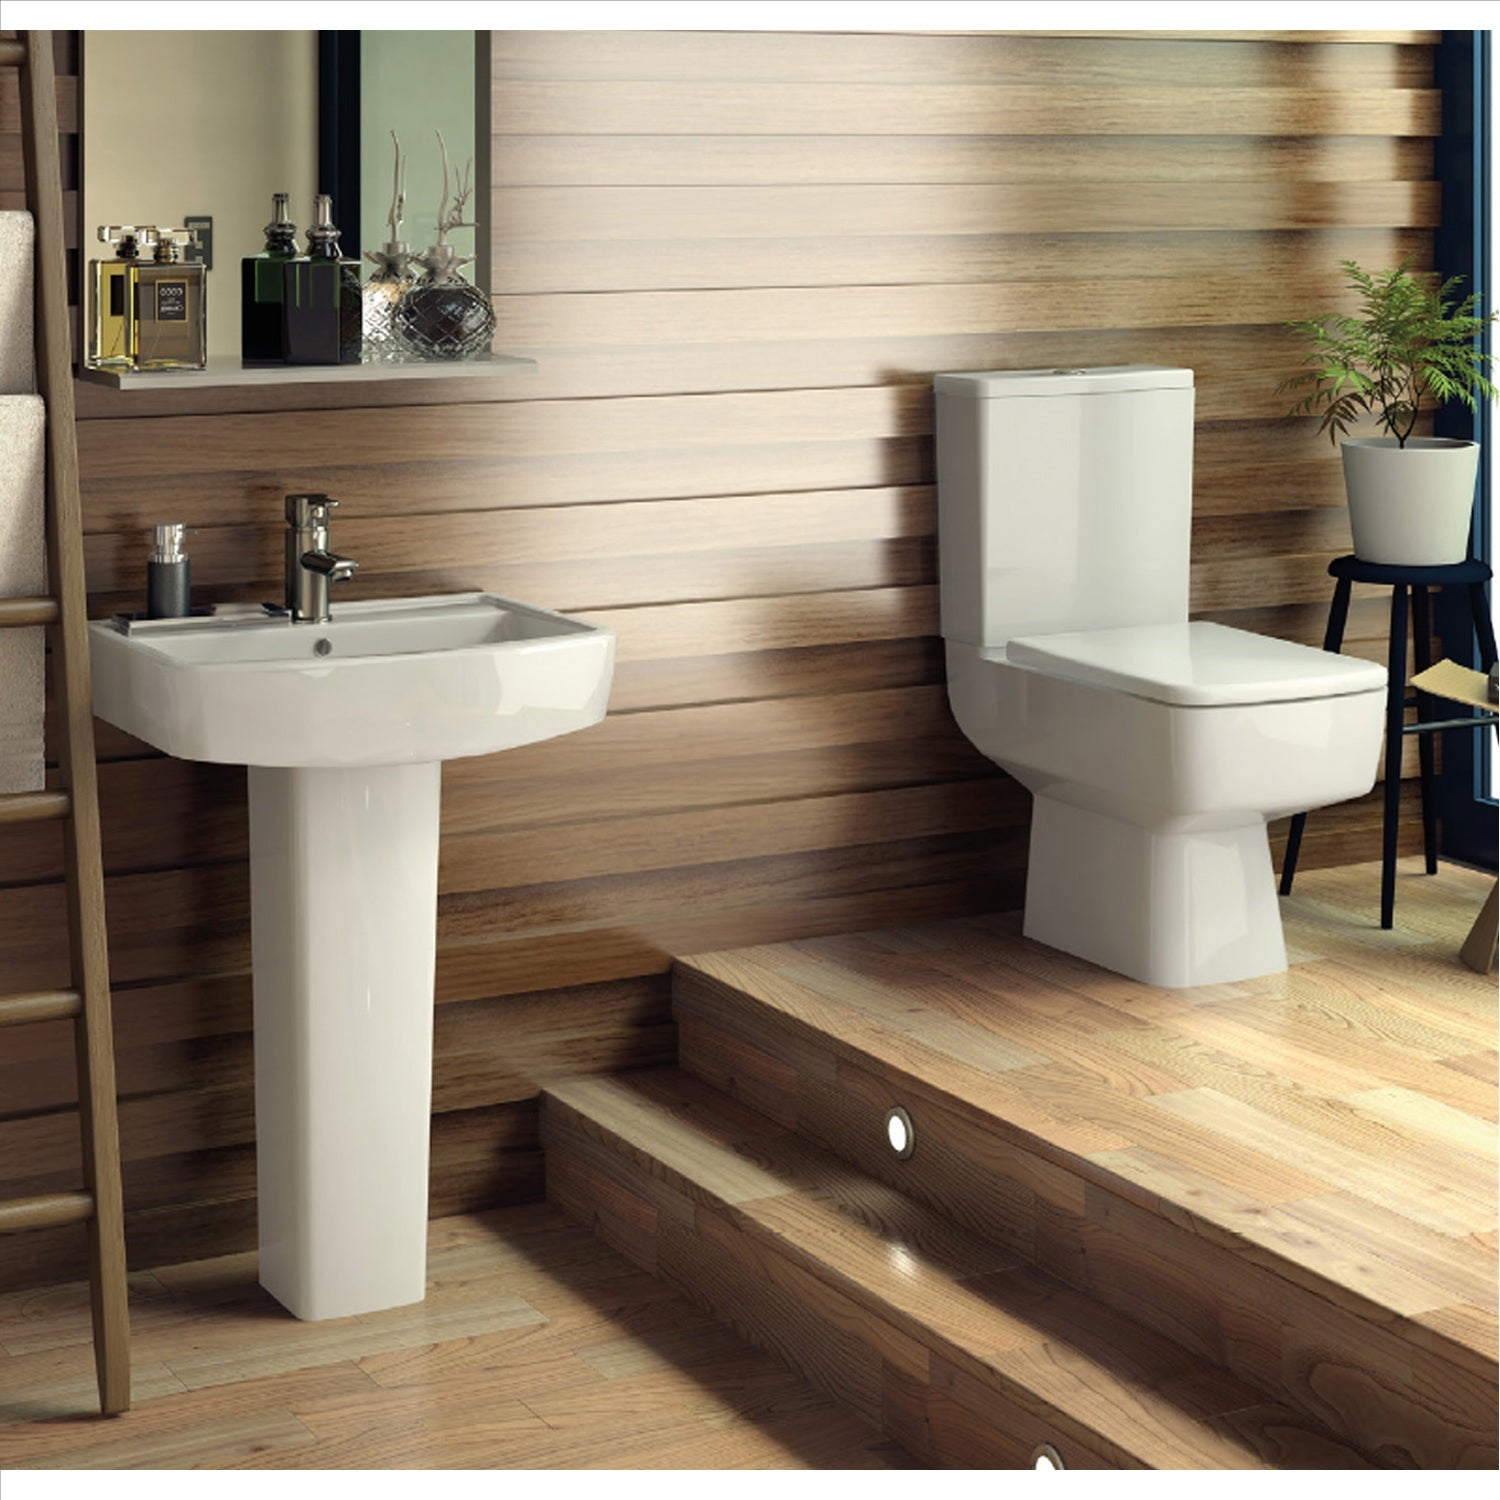 Take a Virtual Look at this Bliss Modern 4 Piece Bathroom Suite!